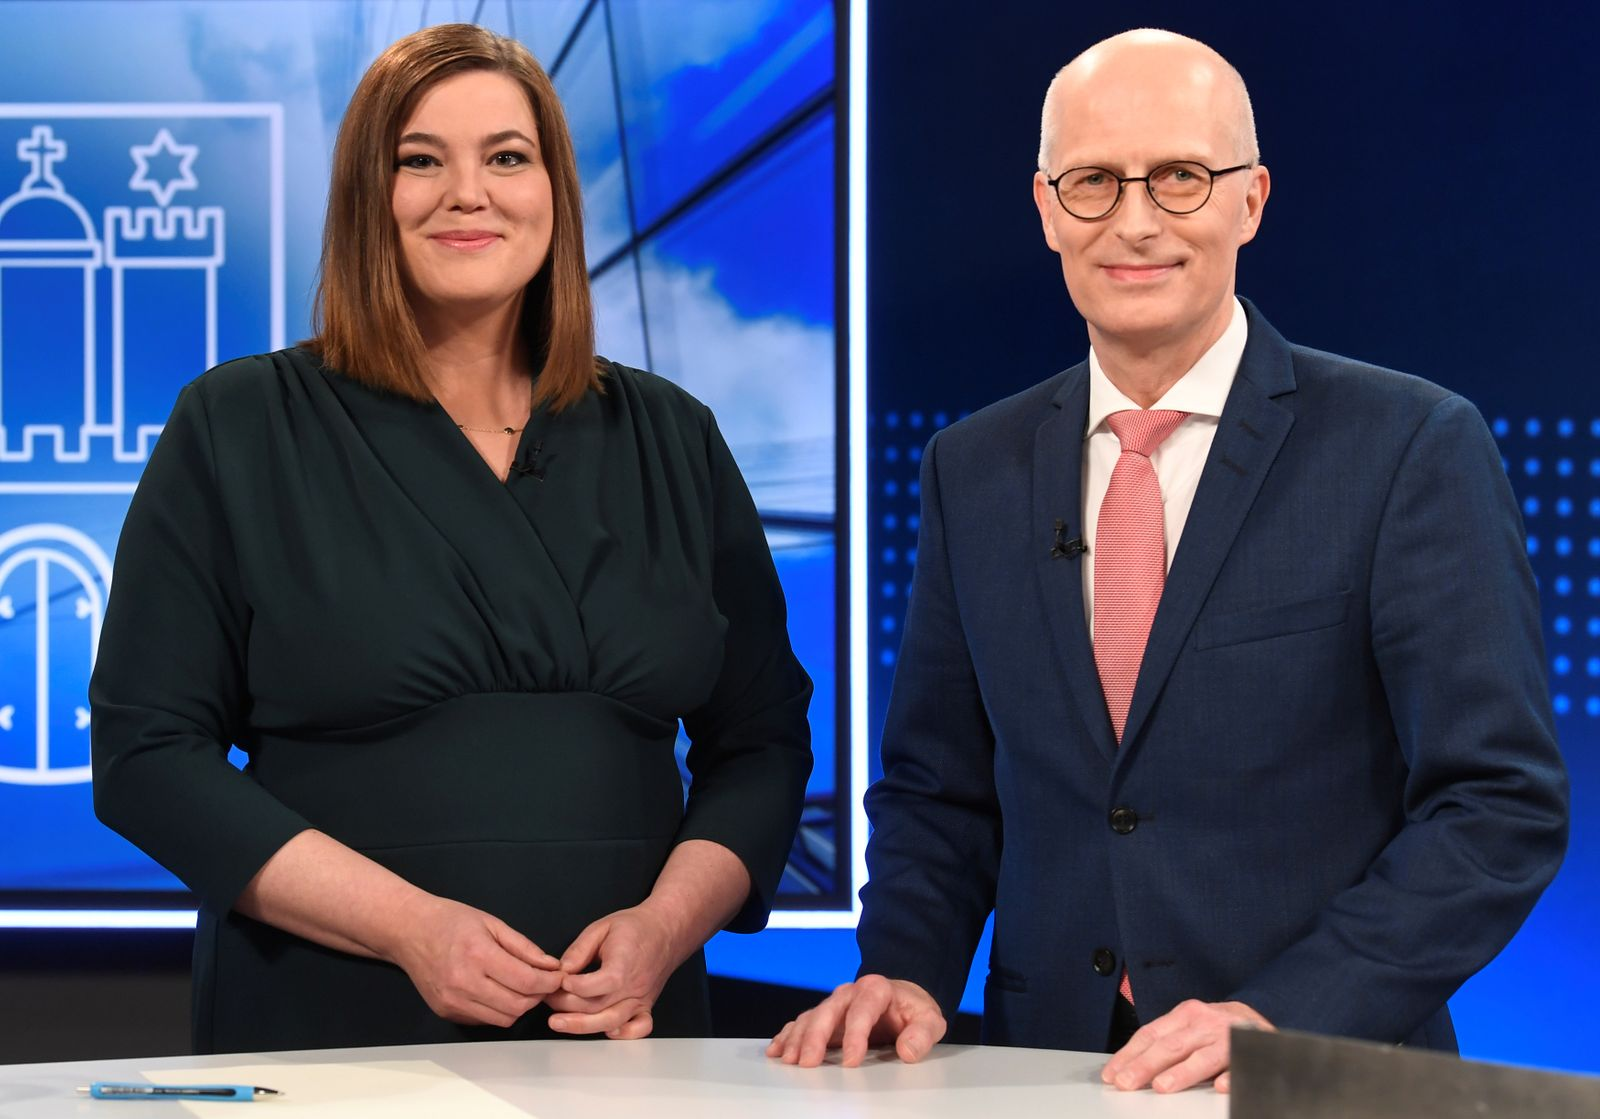 Top candidates, mayor of Hamburg Peter Tschentscher of the Social Democrats (SPD) and Katharina Fegebank of the Greens, pose for the media before a TV debate in Hamburg